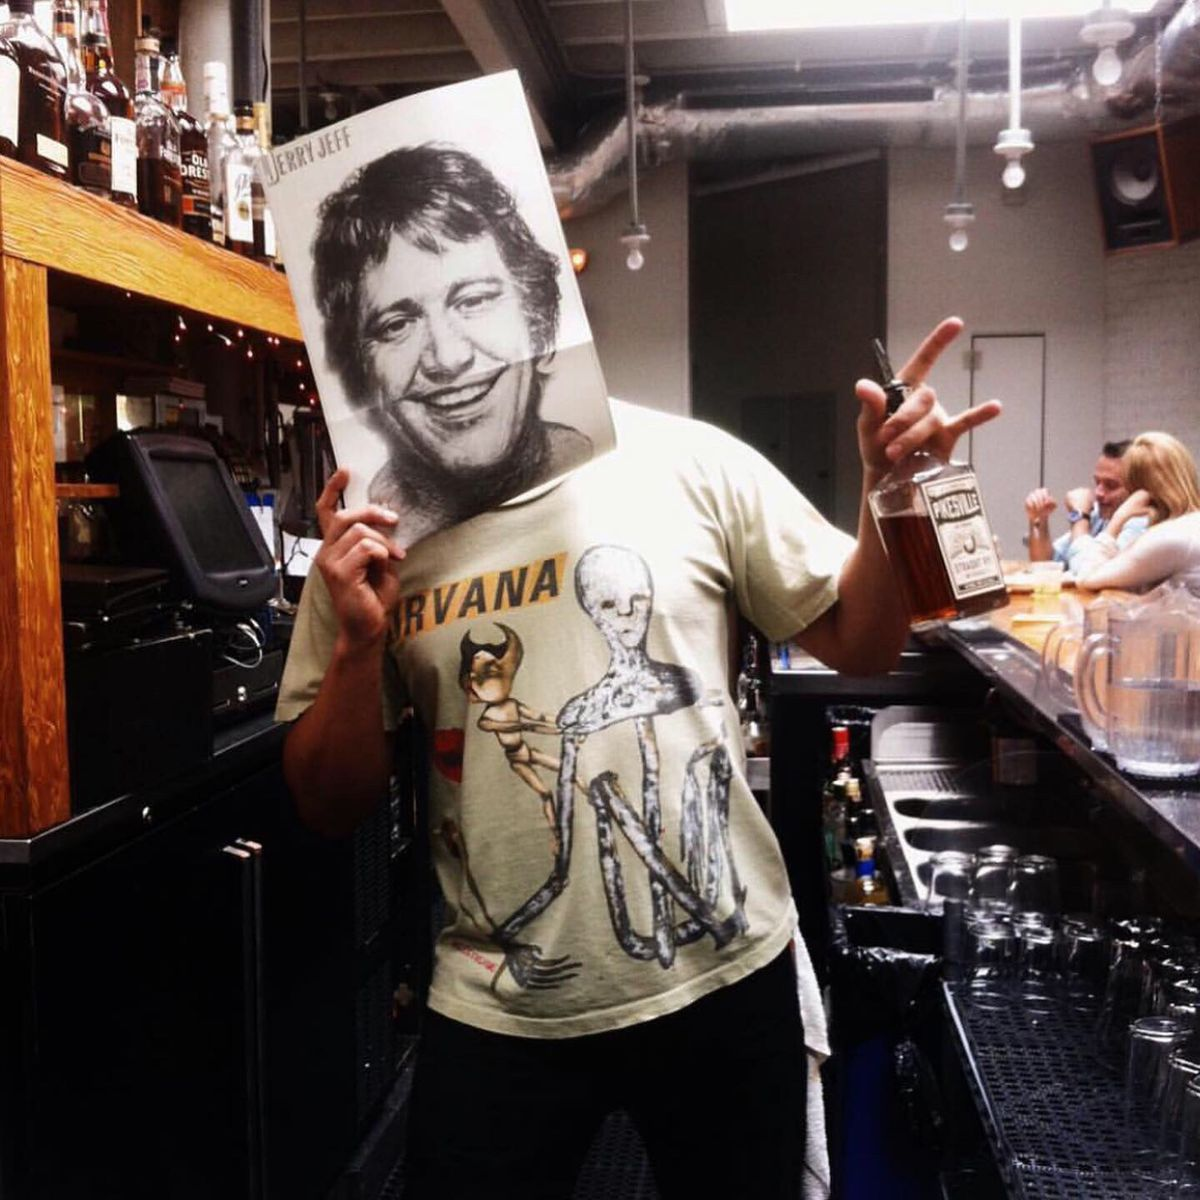 A former manager stands behind the bar holding a whiskey bottle in one hand and an album cover with a face on it in front of his own face in the other hand.